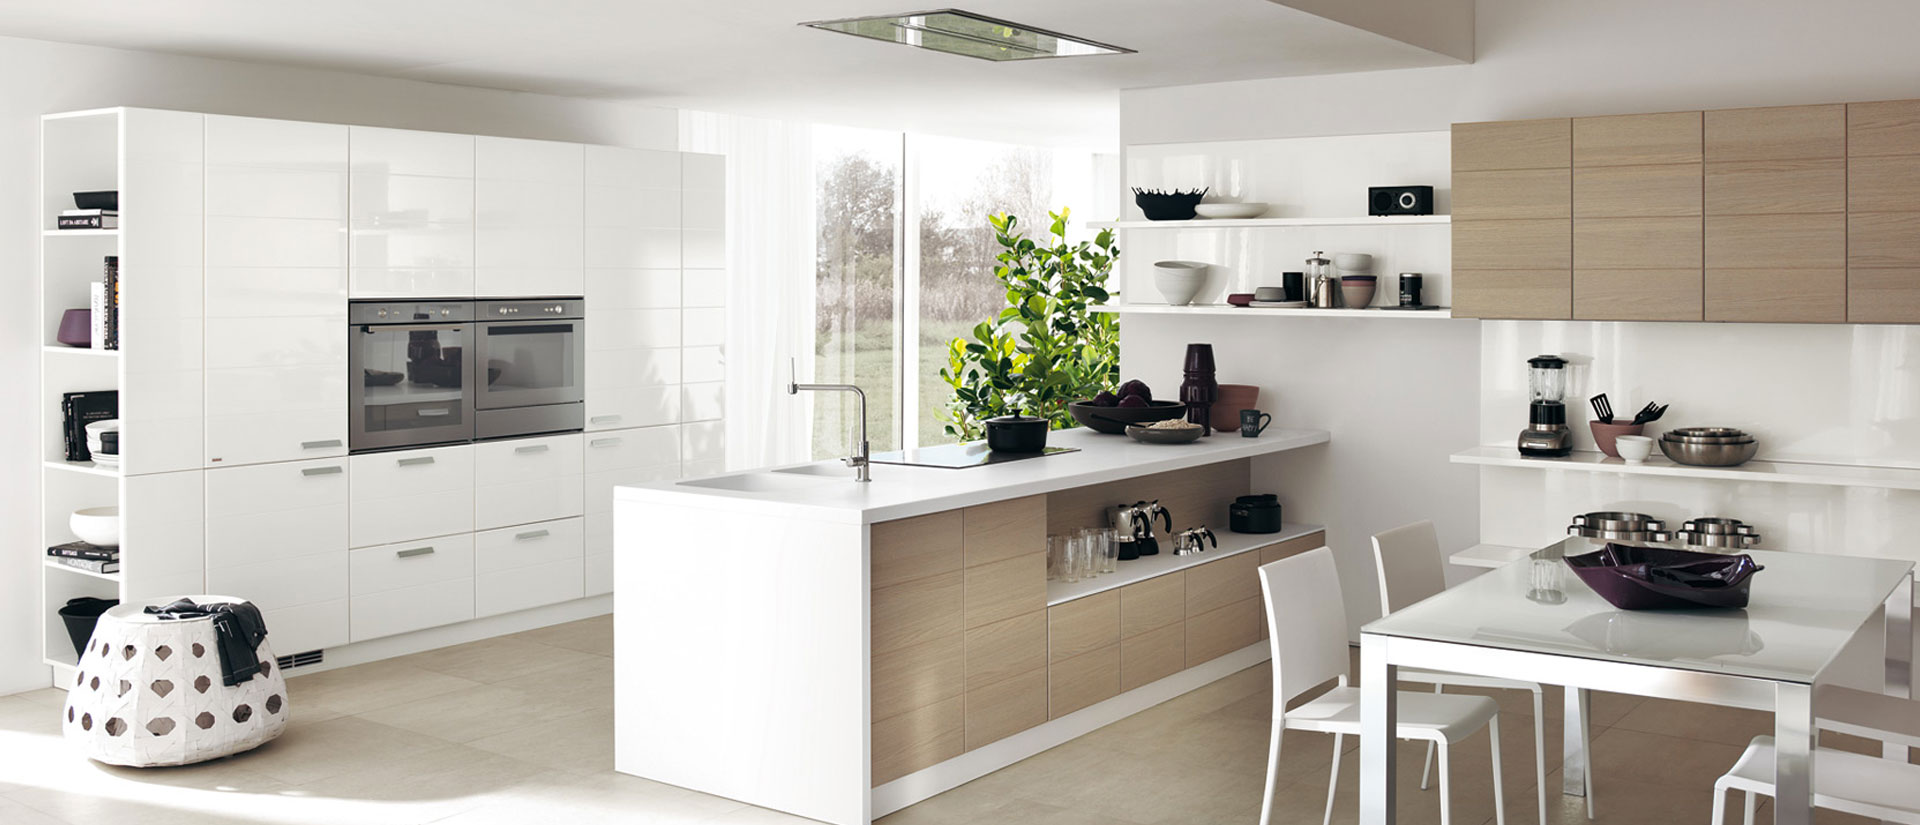 Open casadesign for Arredo cucina design